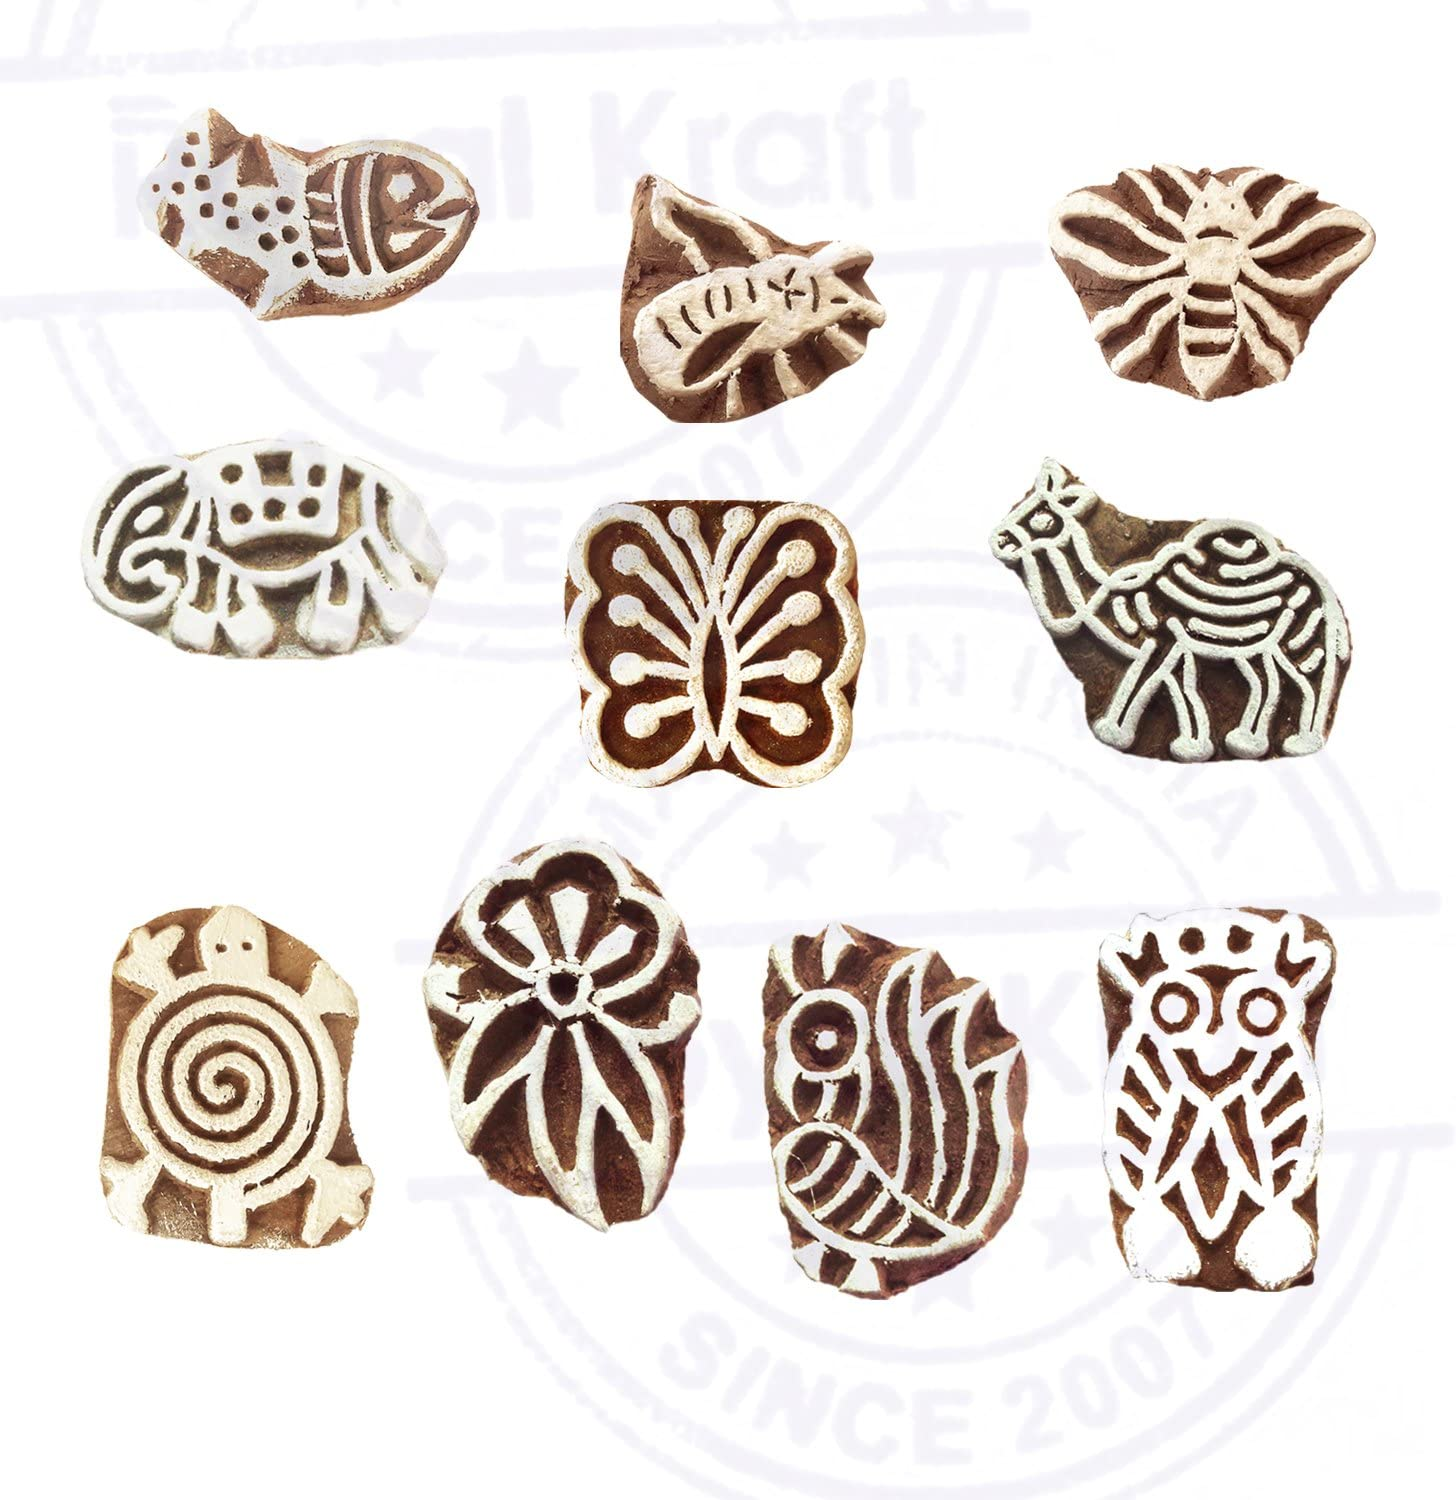 Pottery Printing Blocks Exquisite Small Bird Pattern Wooden Stamps Set of 10